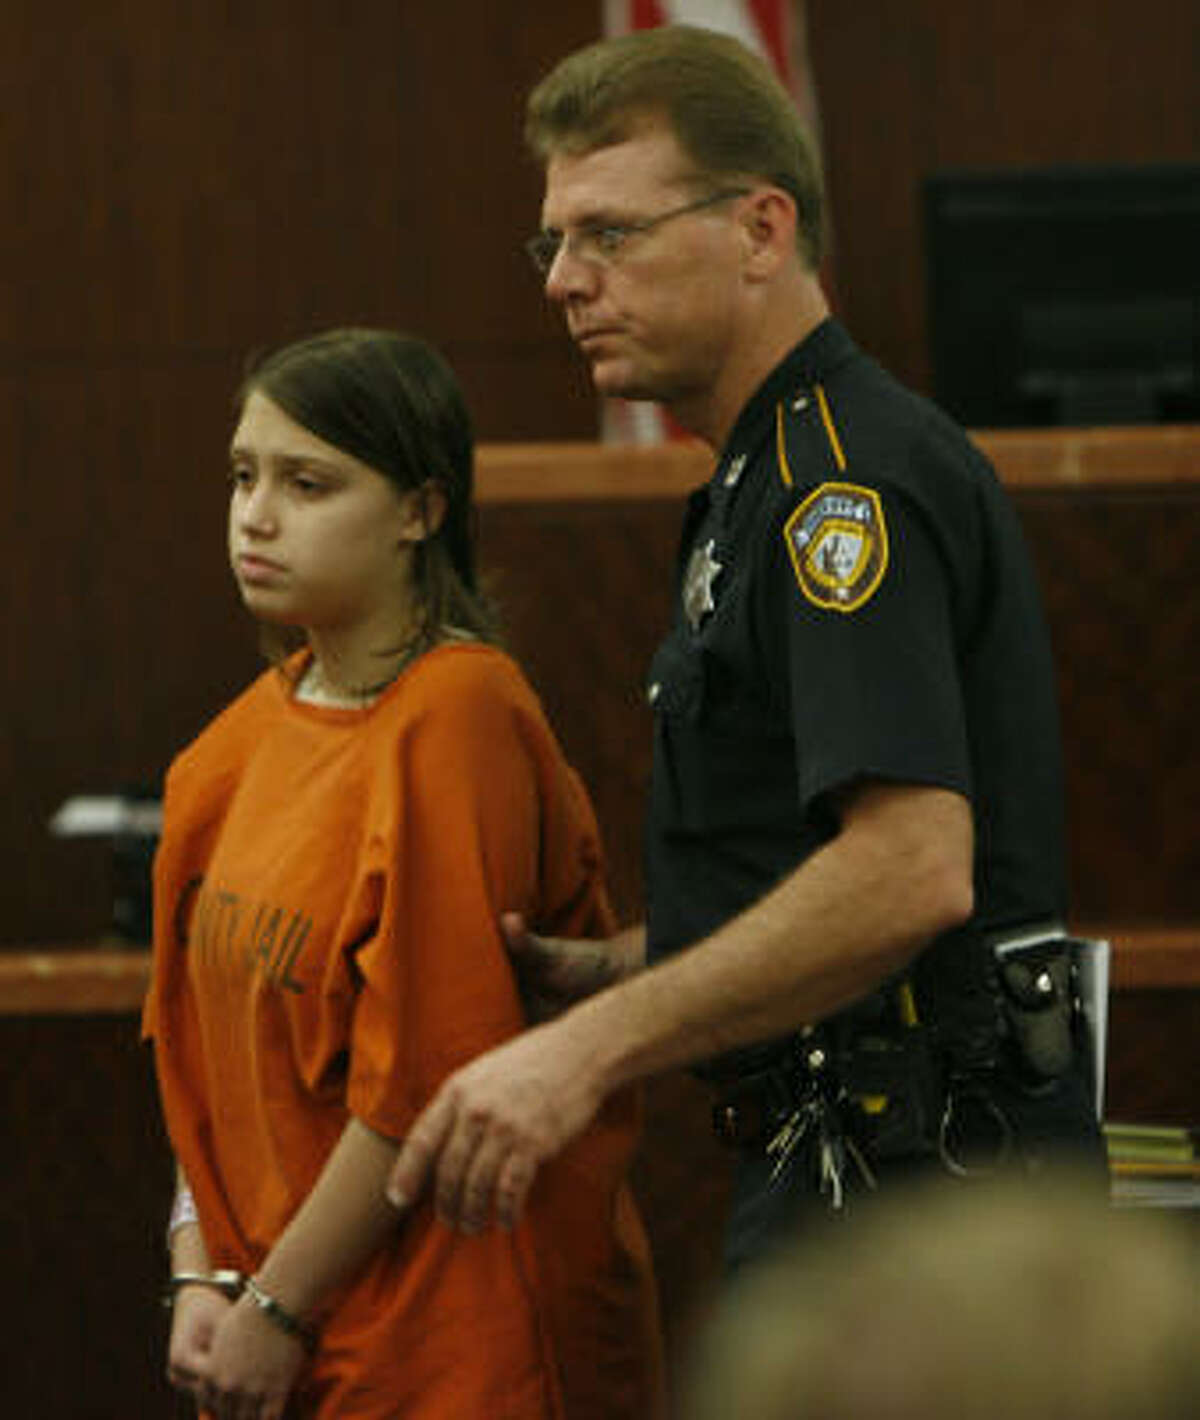 Ashley Paige Benton is escorted out of the courtroom by the bailiff after she appeared in court at the Harris County Criminal Justice Center in Houston.